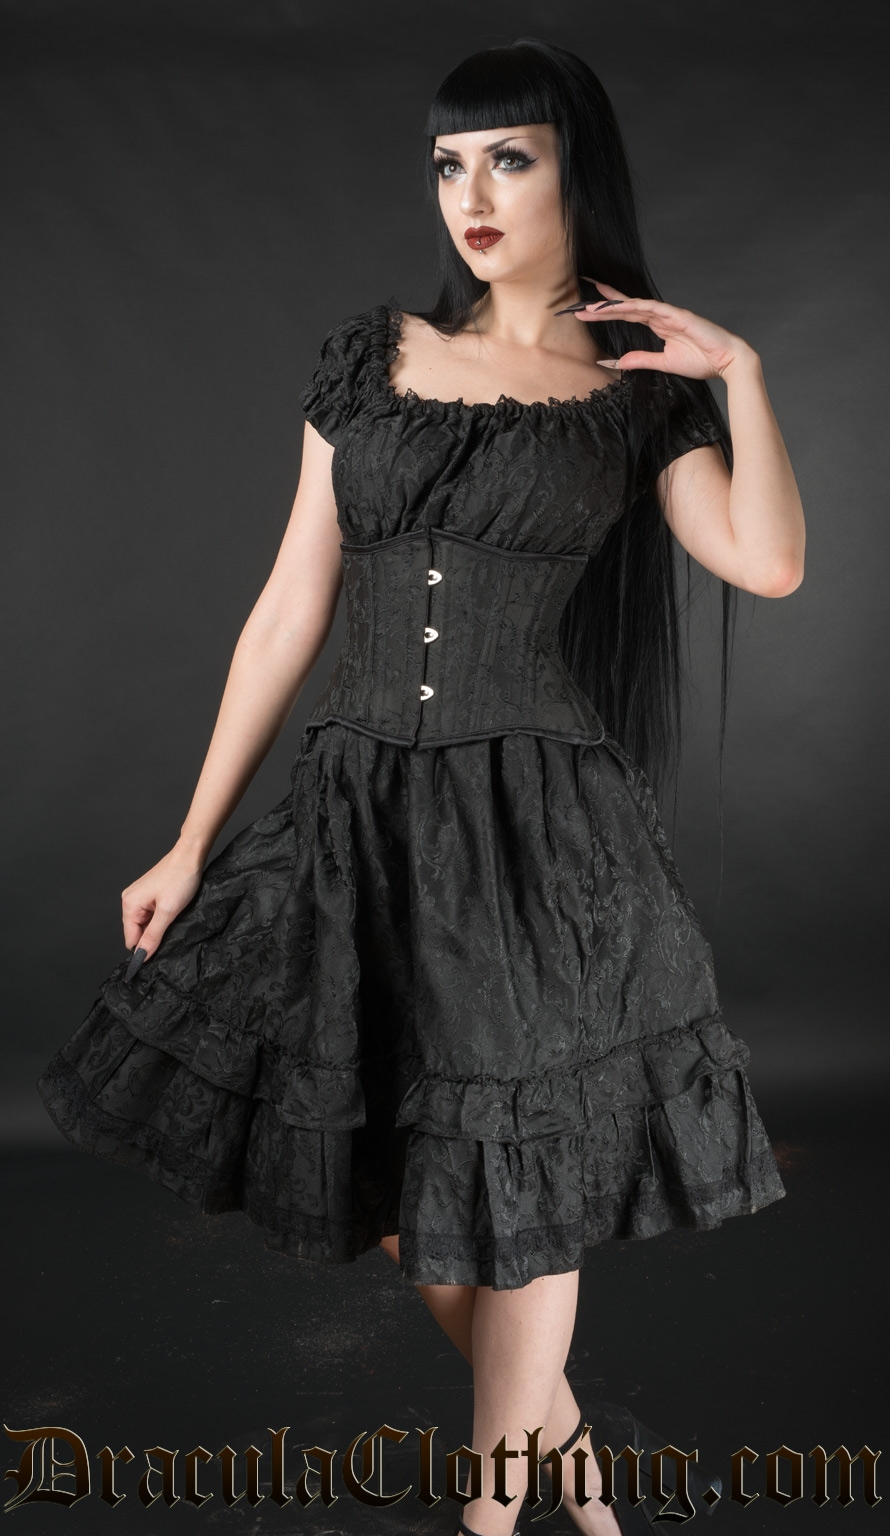 Black Brocade Gothabilly Dress